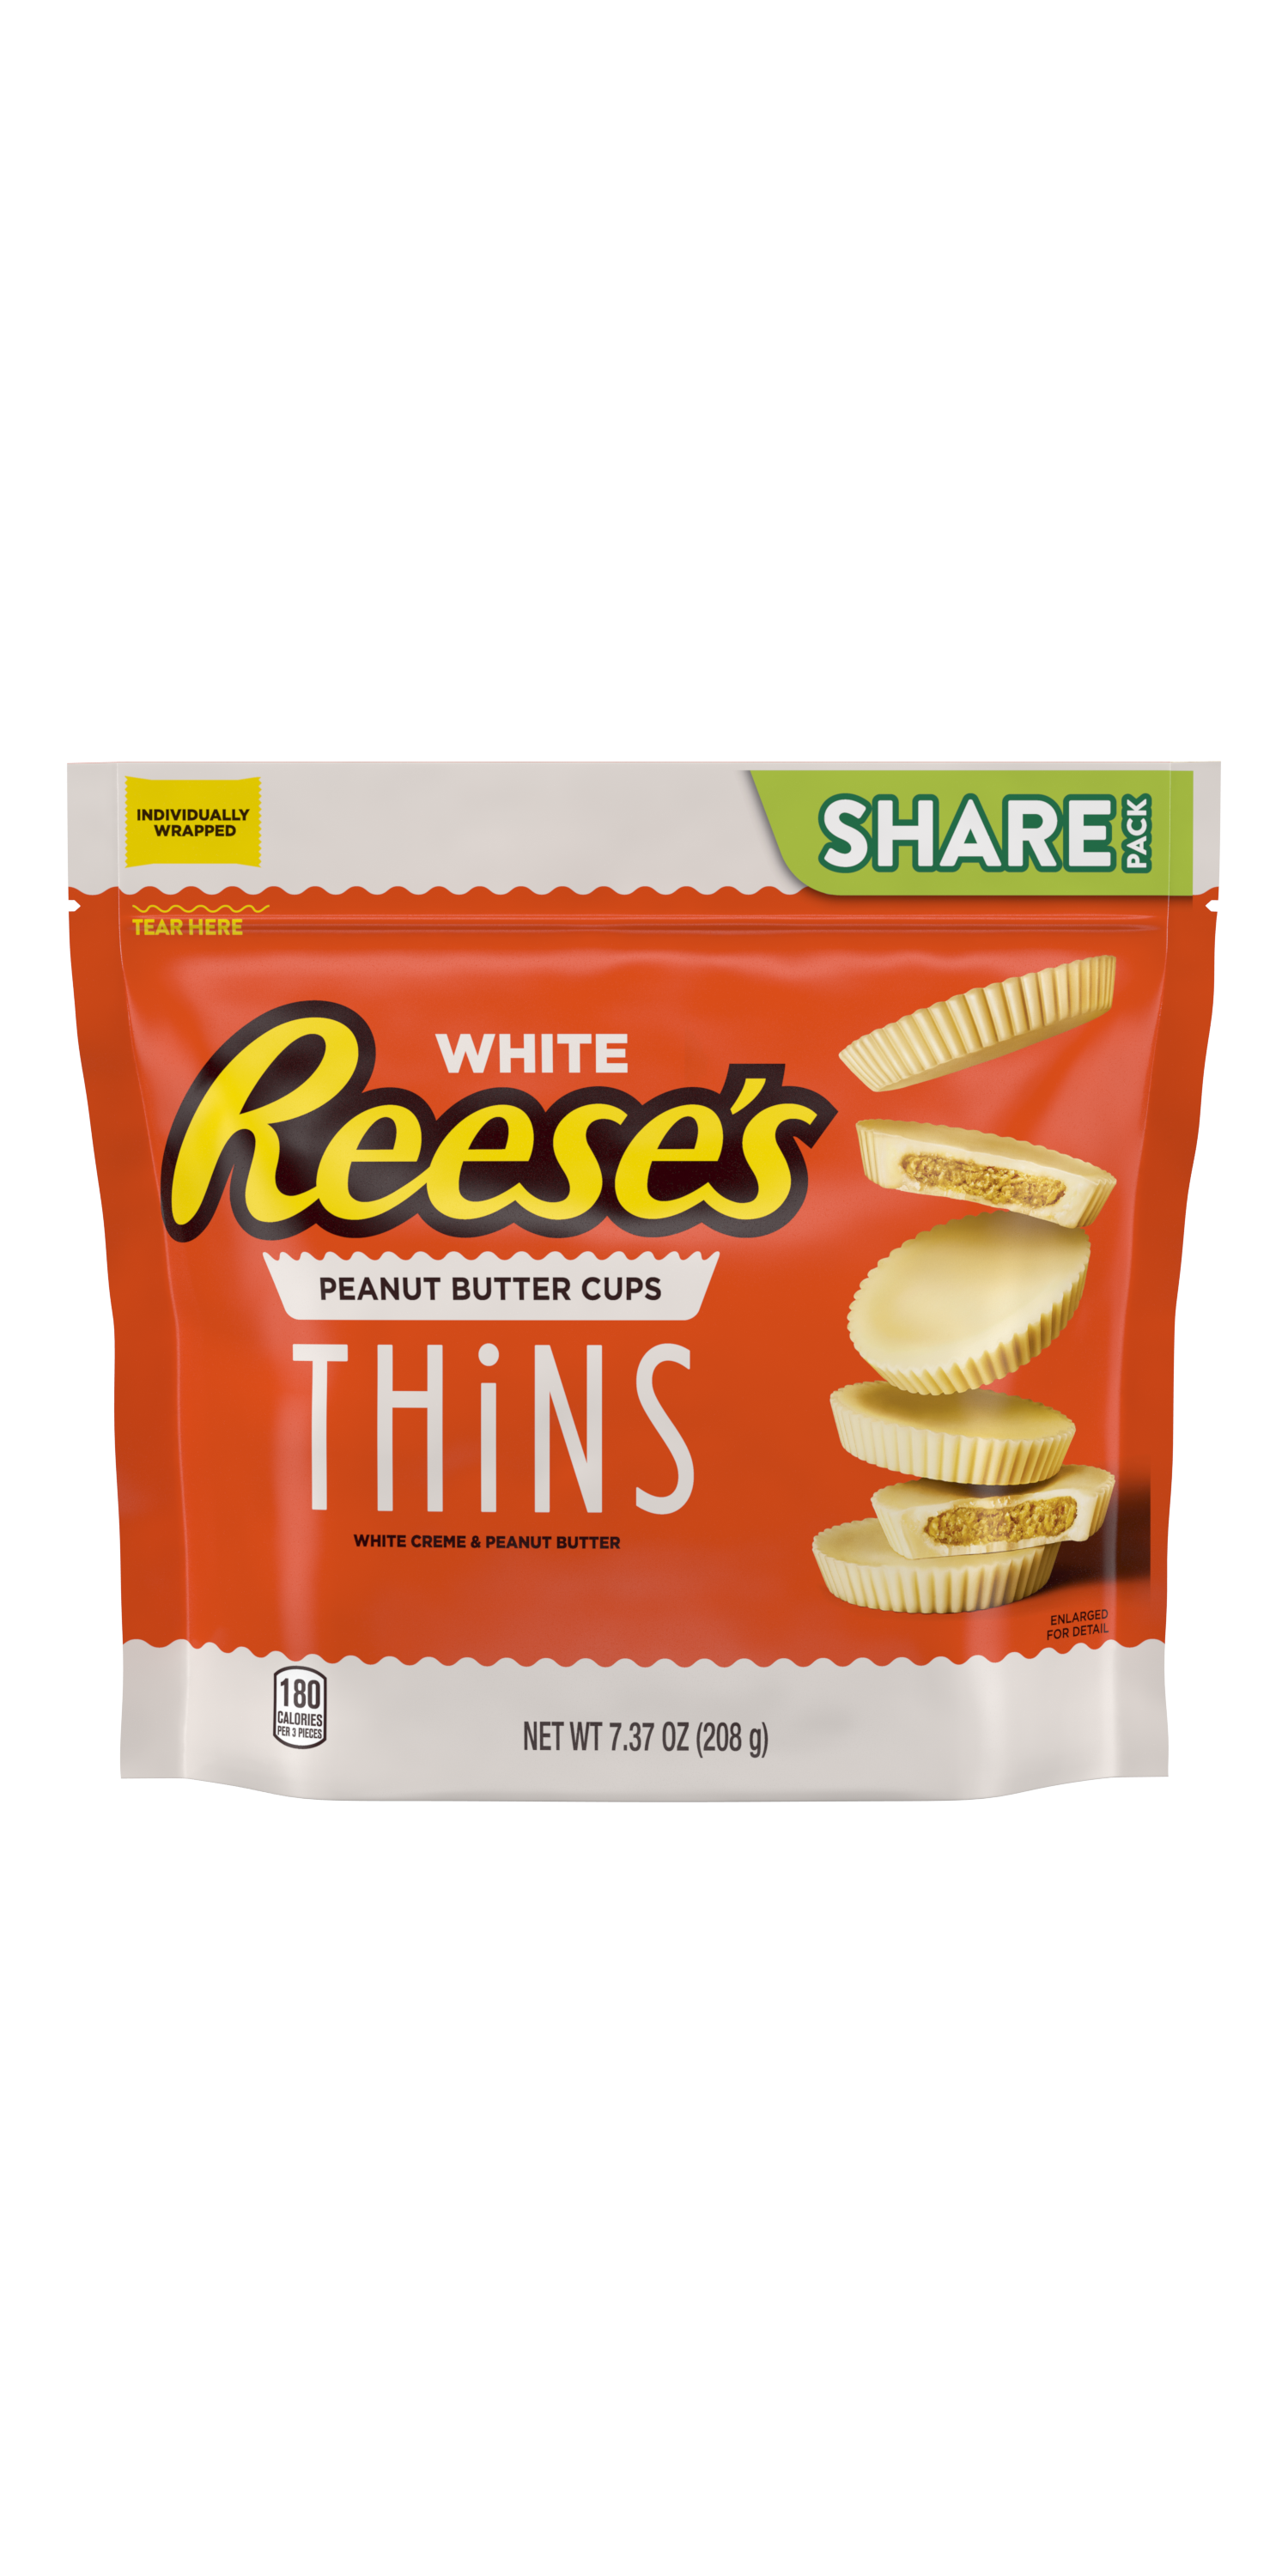 REESE'S THiNS White Creme Peanut Butter Cups, 7.37 oz pack - Front of Package